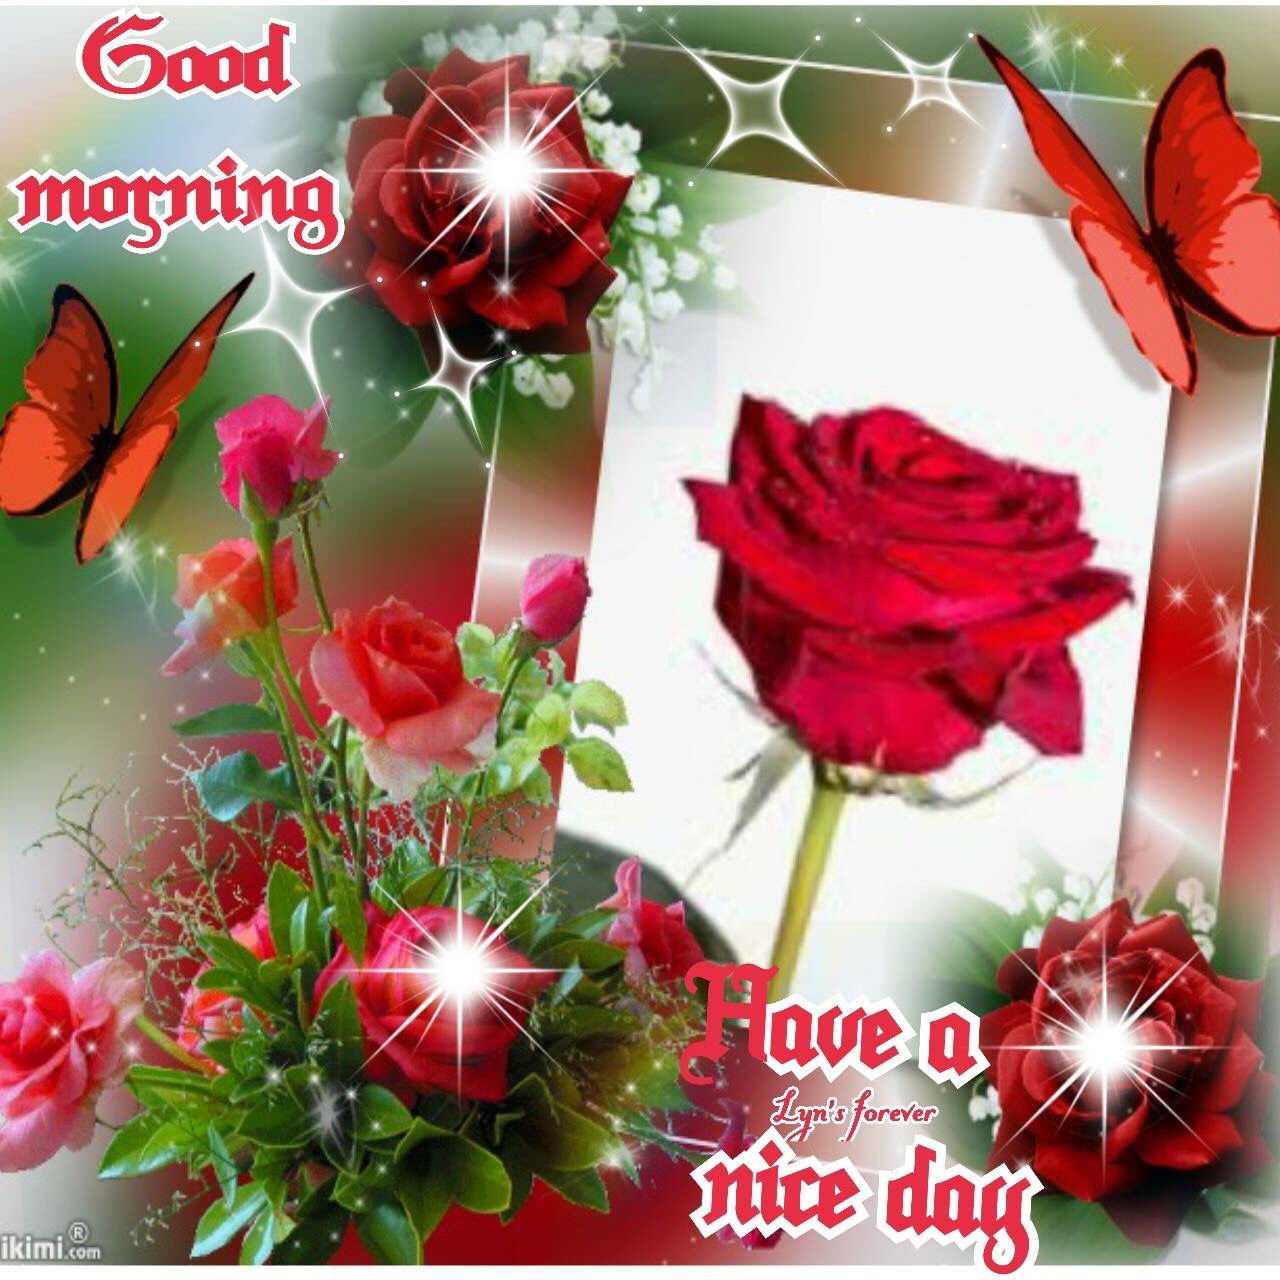 good morning have a nice day roses and butterflies pictures photos